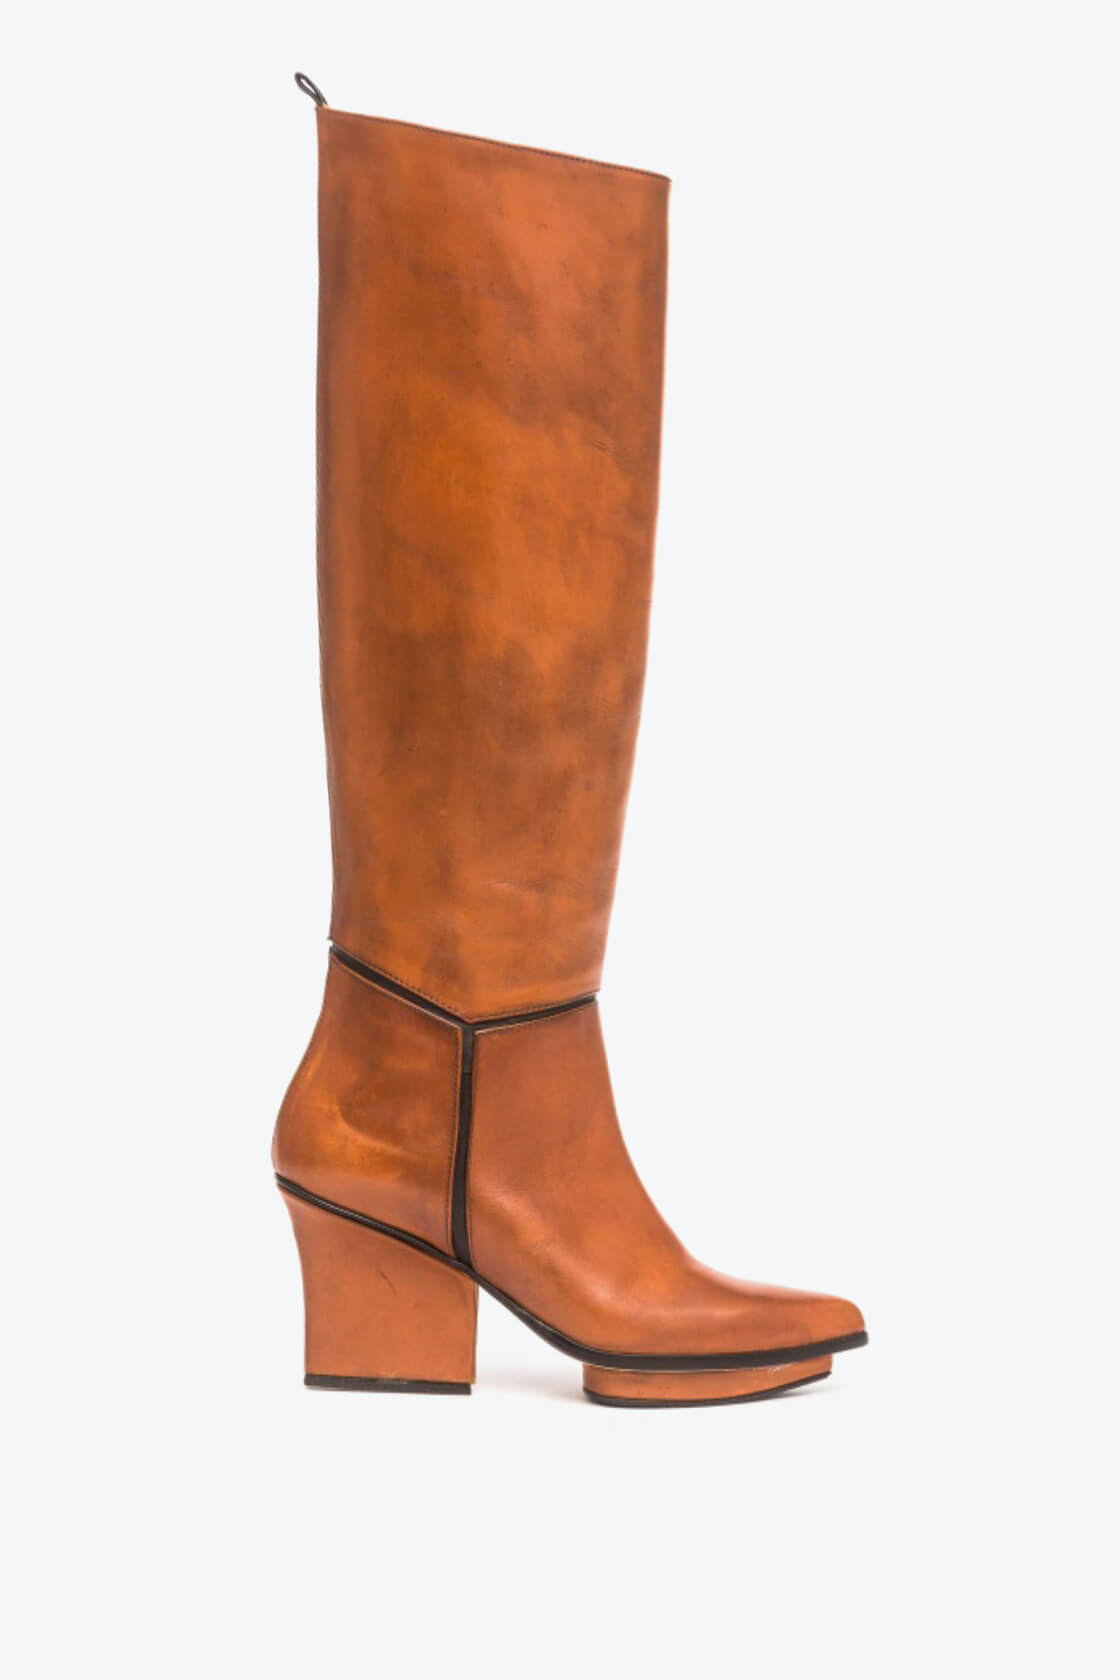 EJK0000021 Mira knee high boots camel 1